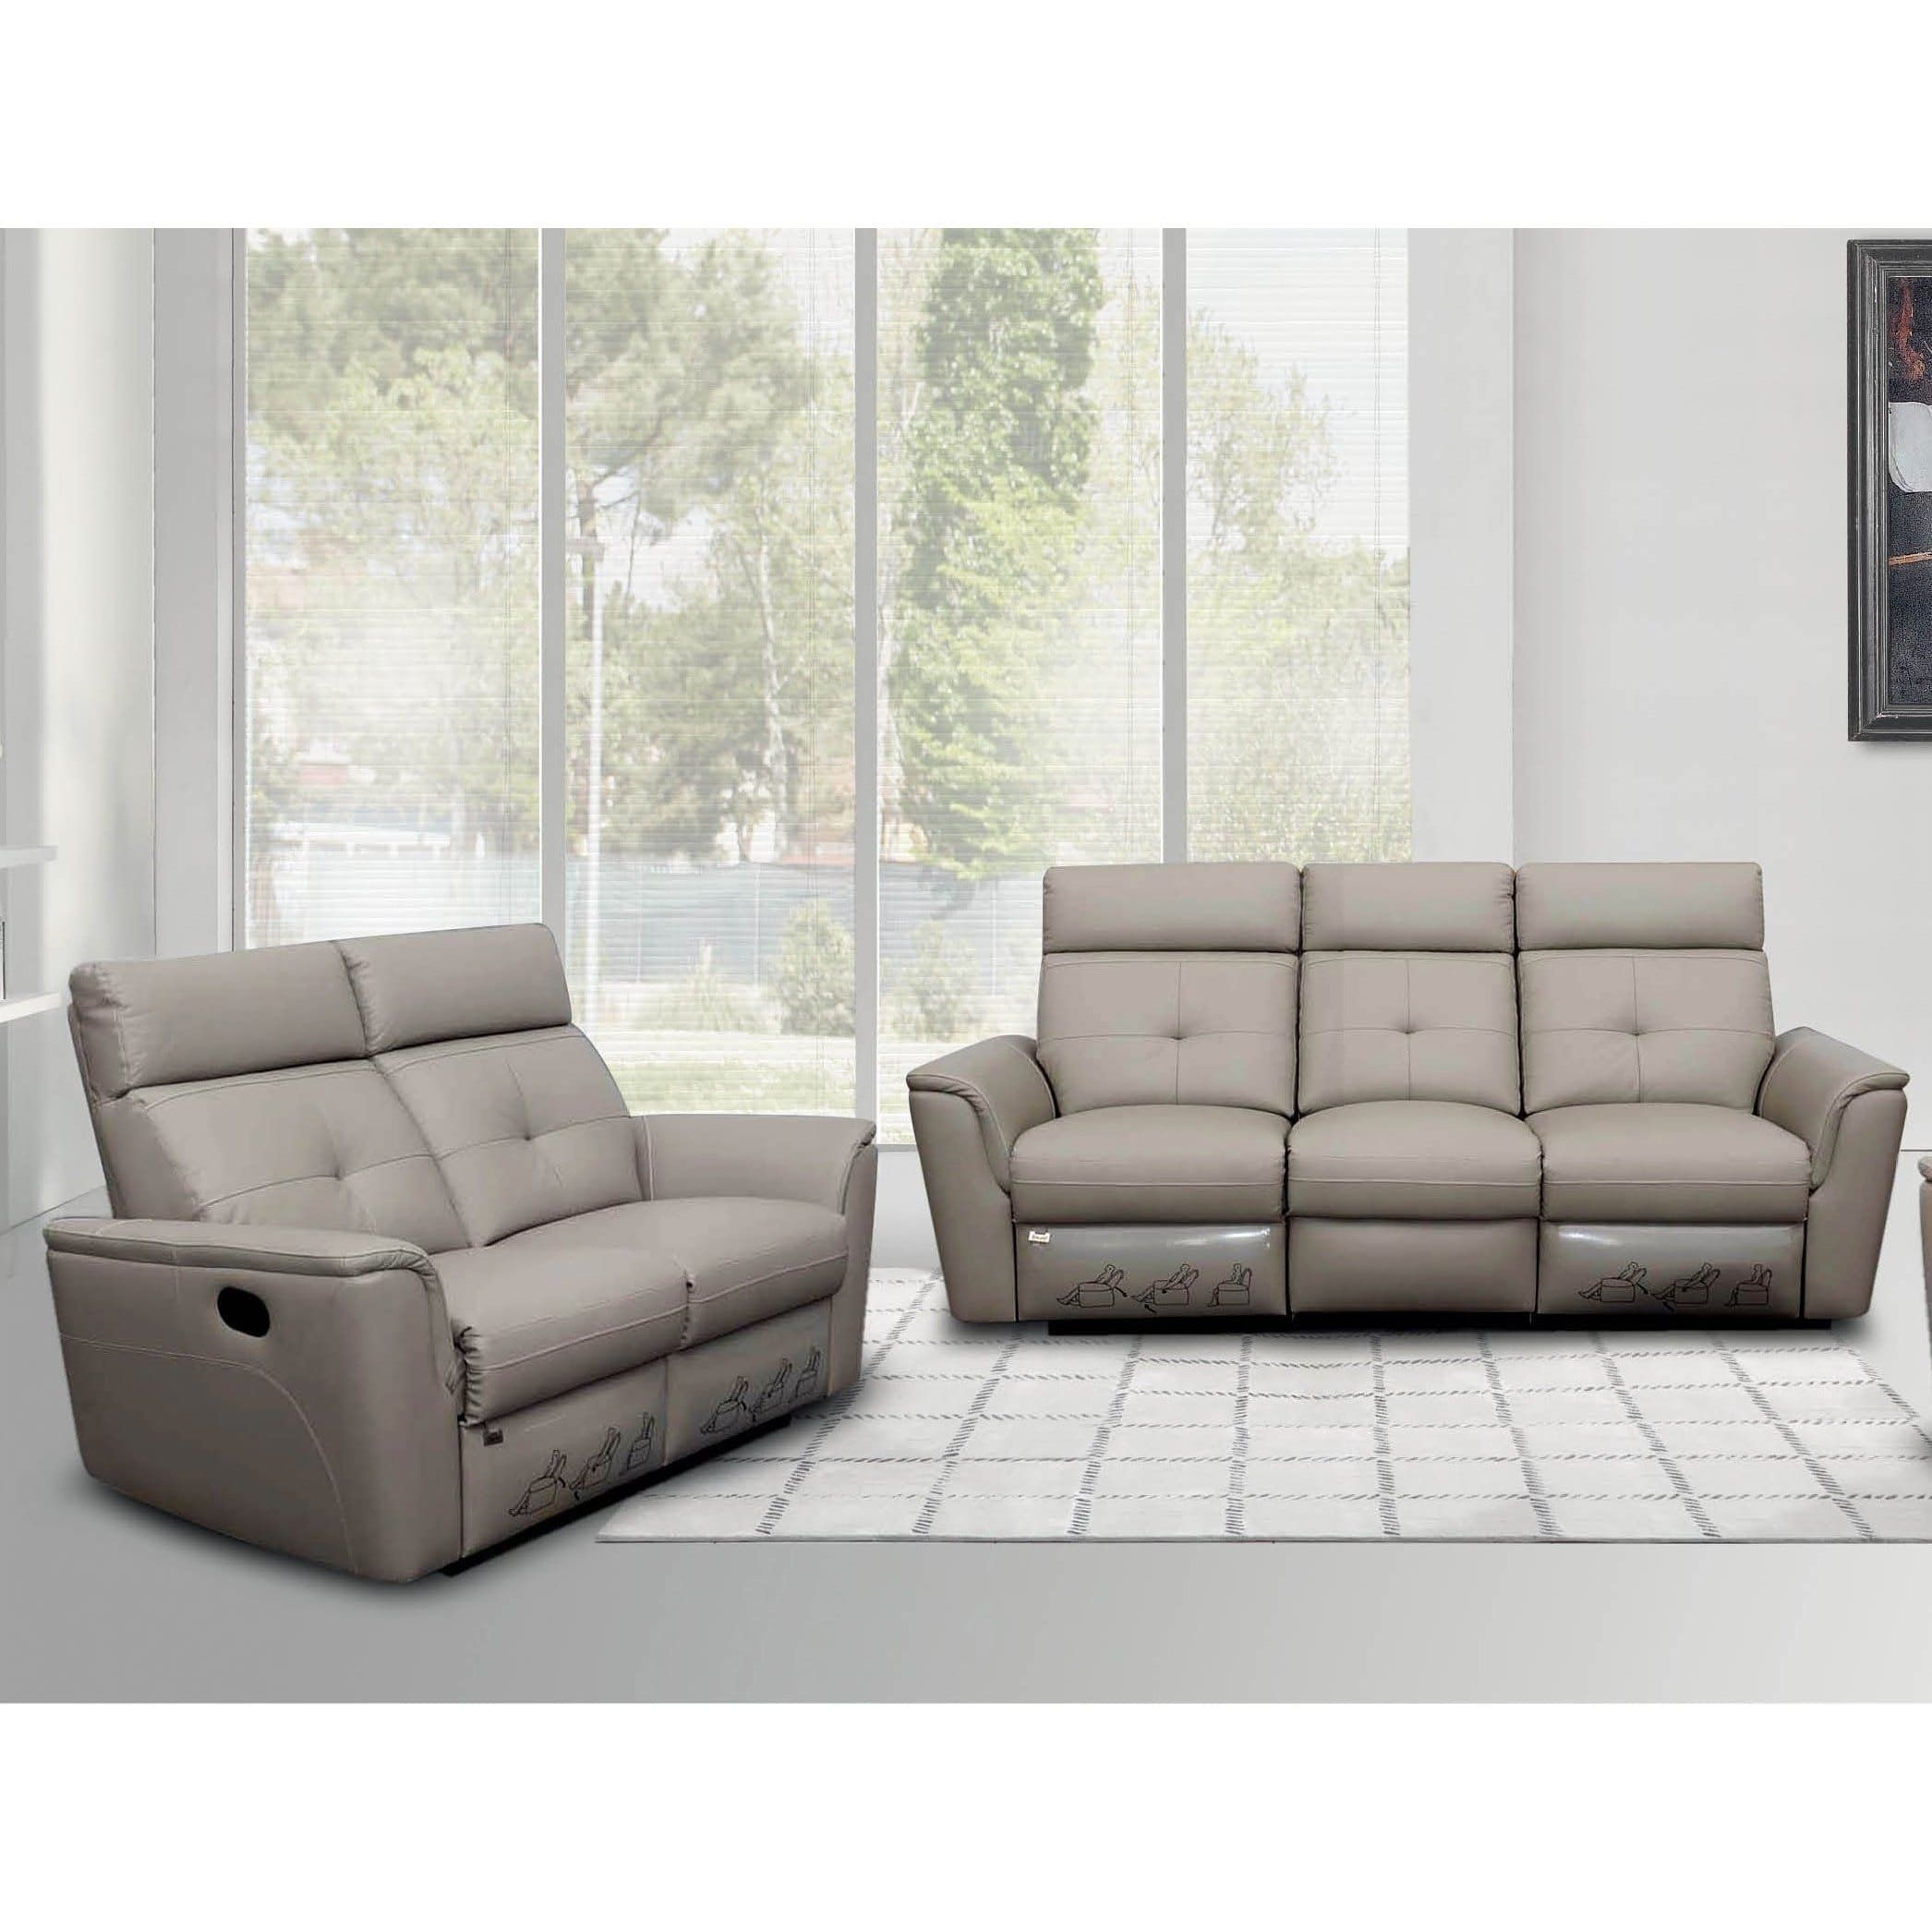 Luca Home Light Grey Sofa And Loveseat Manual Reclining Set Learn More Testimonials Of The Pr In 2020 Sofa And Loveseat Set Living Room Sets Leather Living Room Set